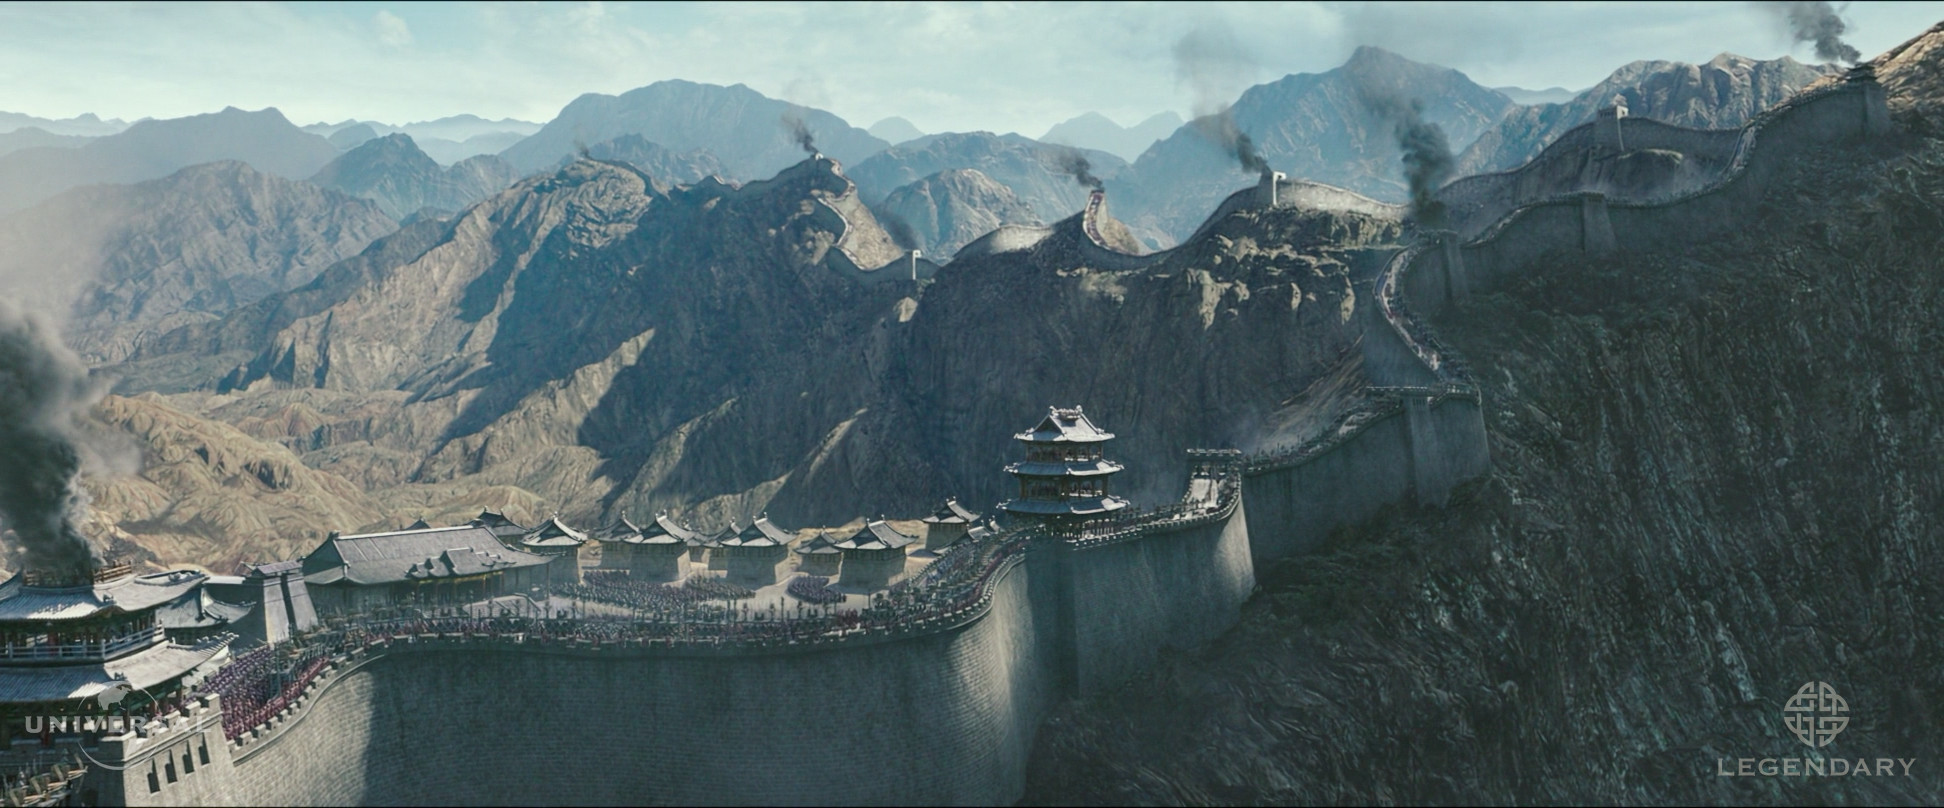 Digital Matte Painting and Environment Generalist Extension and Enhancements. A teamwork effort! Final comp is done by another vendor.